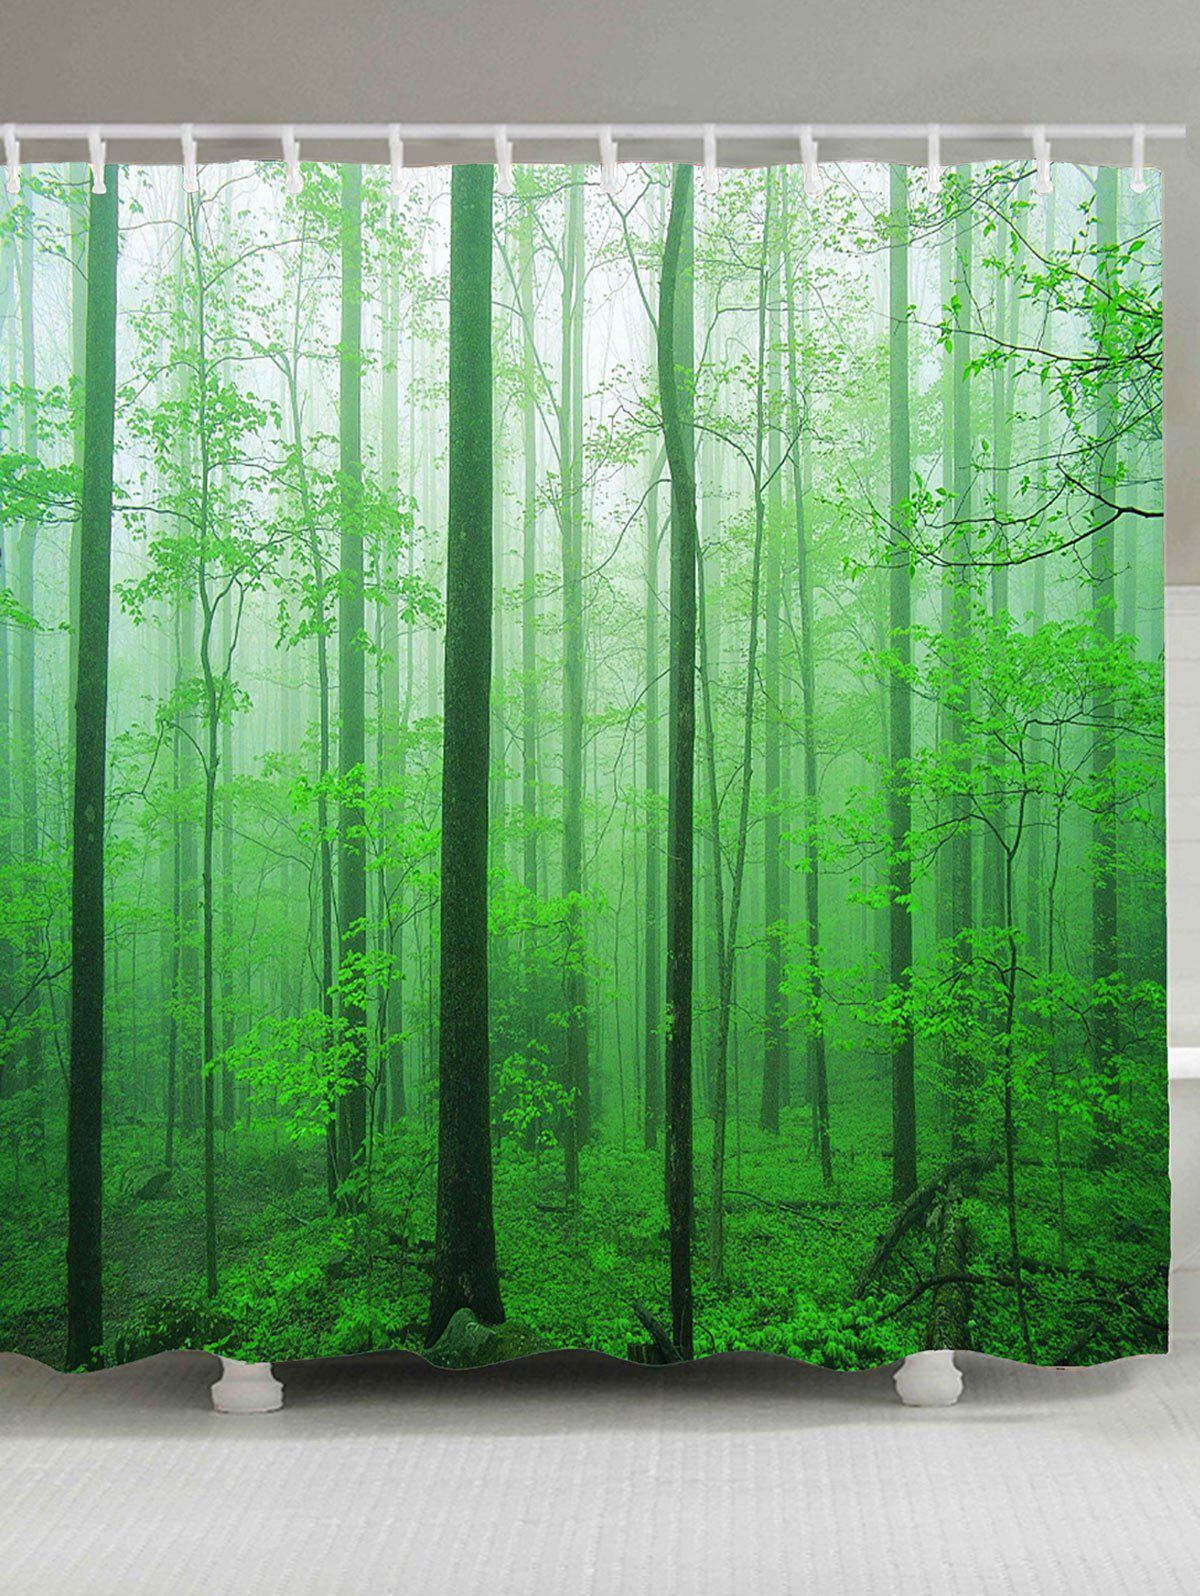 Waterproof Foggy Forest Tree Shower Curtain - GREEN W71 INCH * L79 INCH